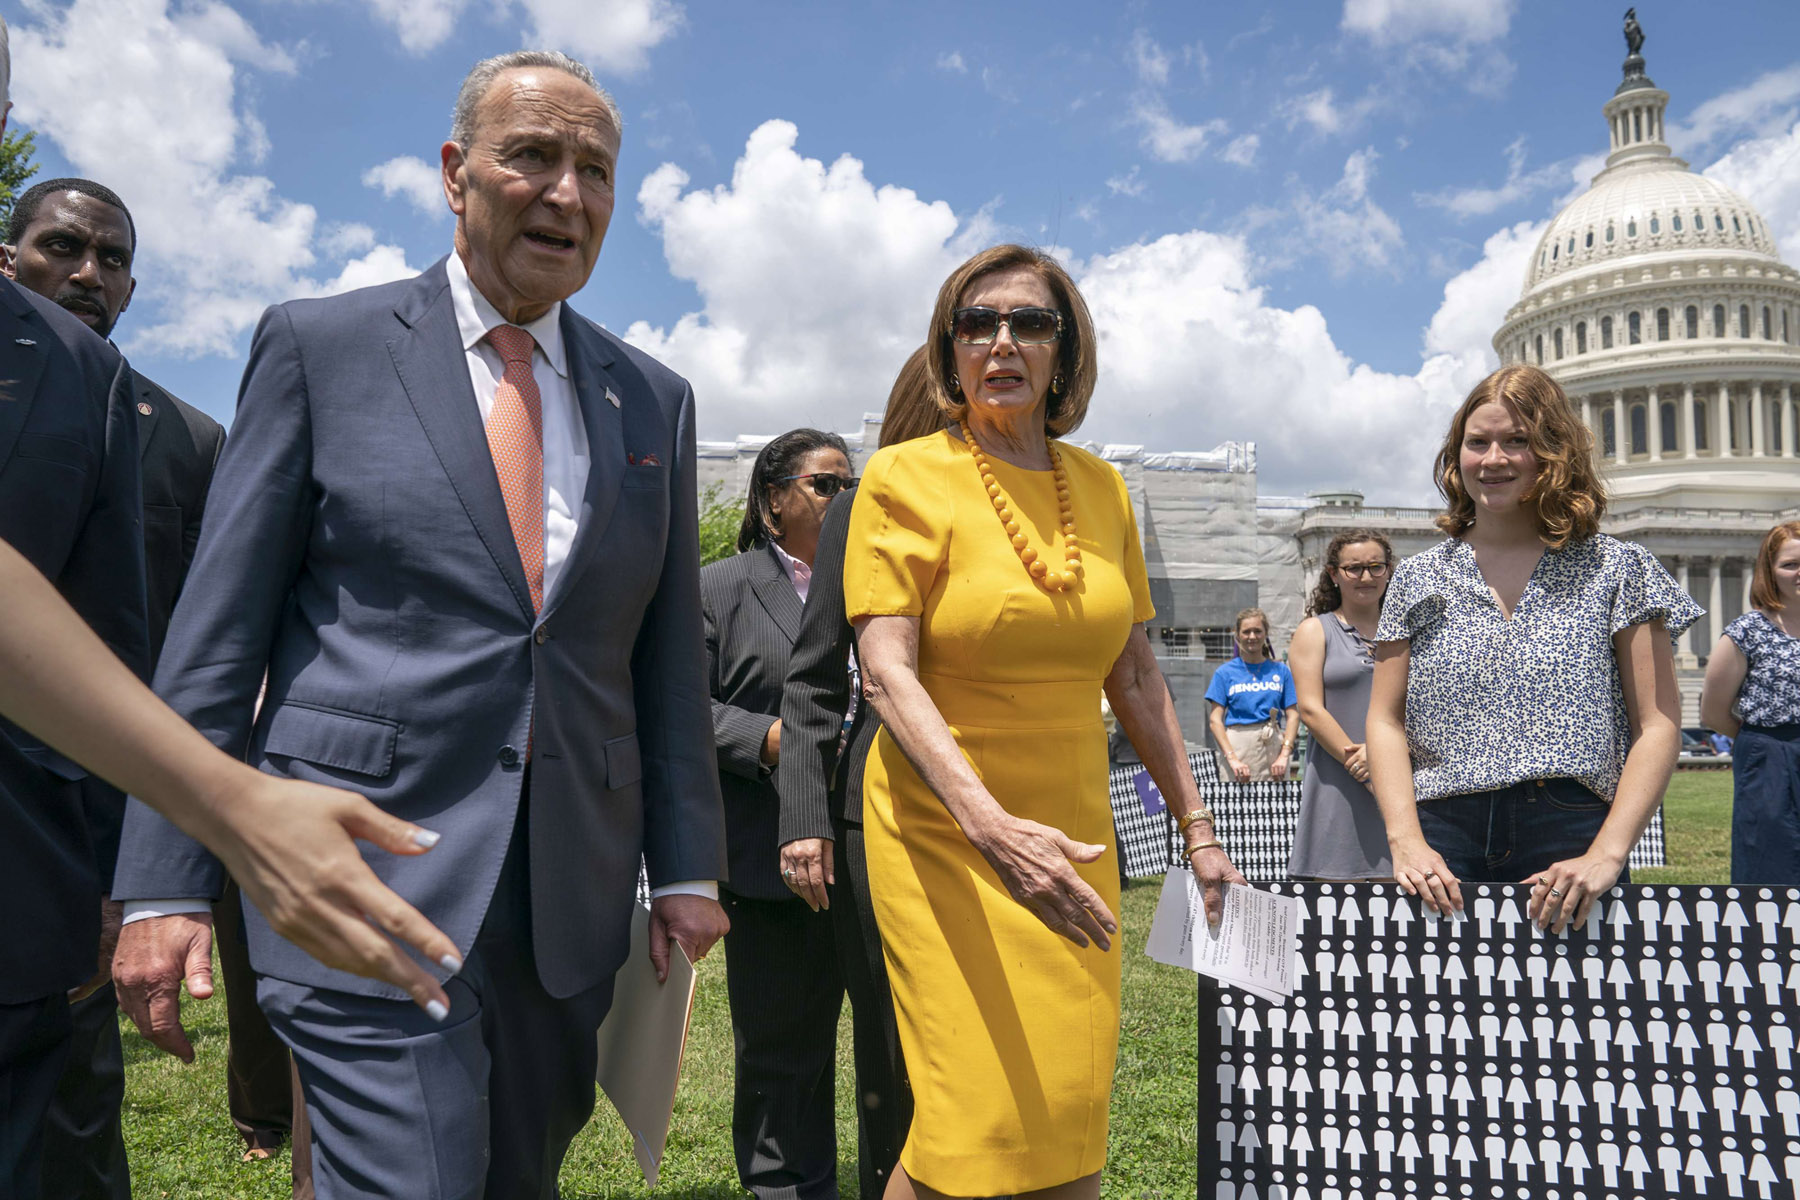 US Senate Democratic Leader Chuck Schumer (L) and House Speaker of the House Nancy Pelosi (C) walk at the Capitol in Washington following a briefing on Iran, June 20. (AP)